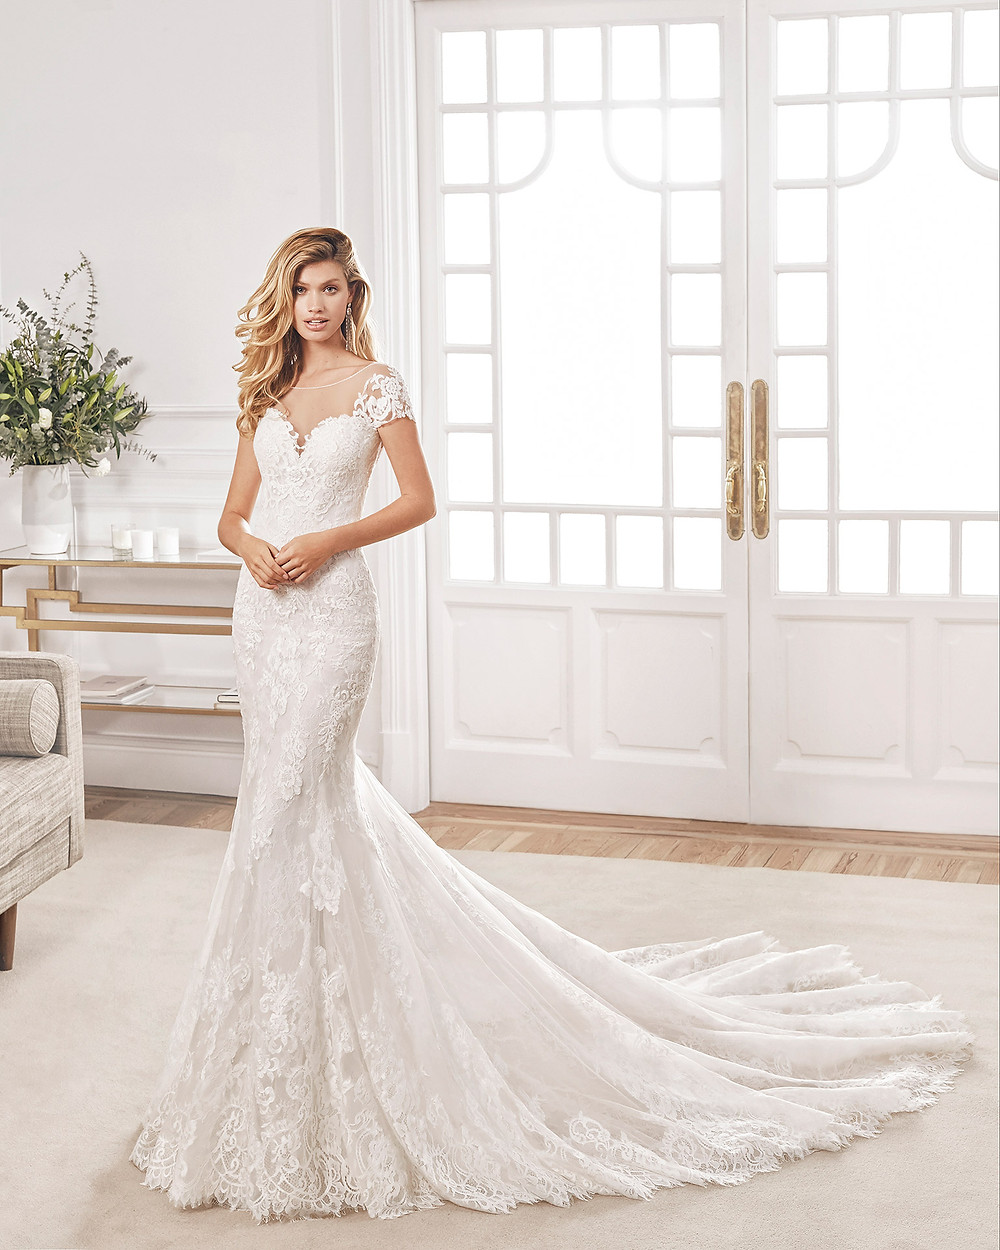 An Aire Barcelona 2020 lace mermaid fit and flare wedding dress with an illusion neckline